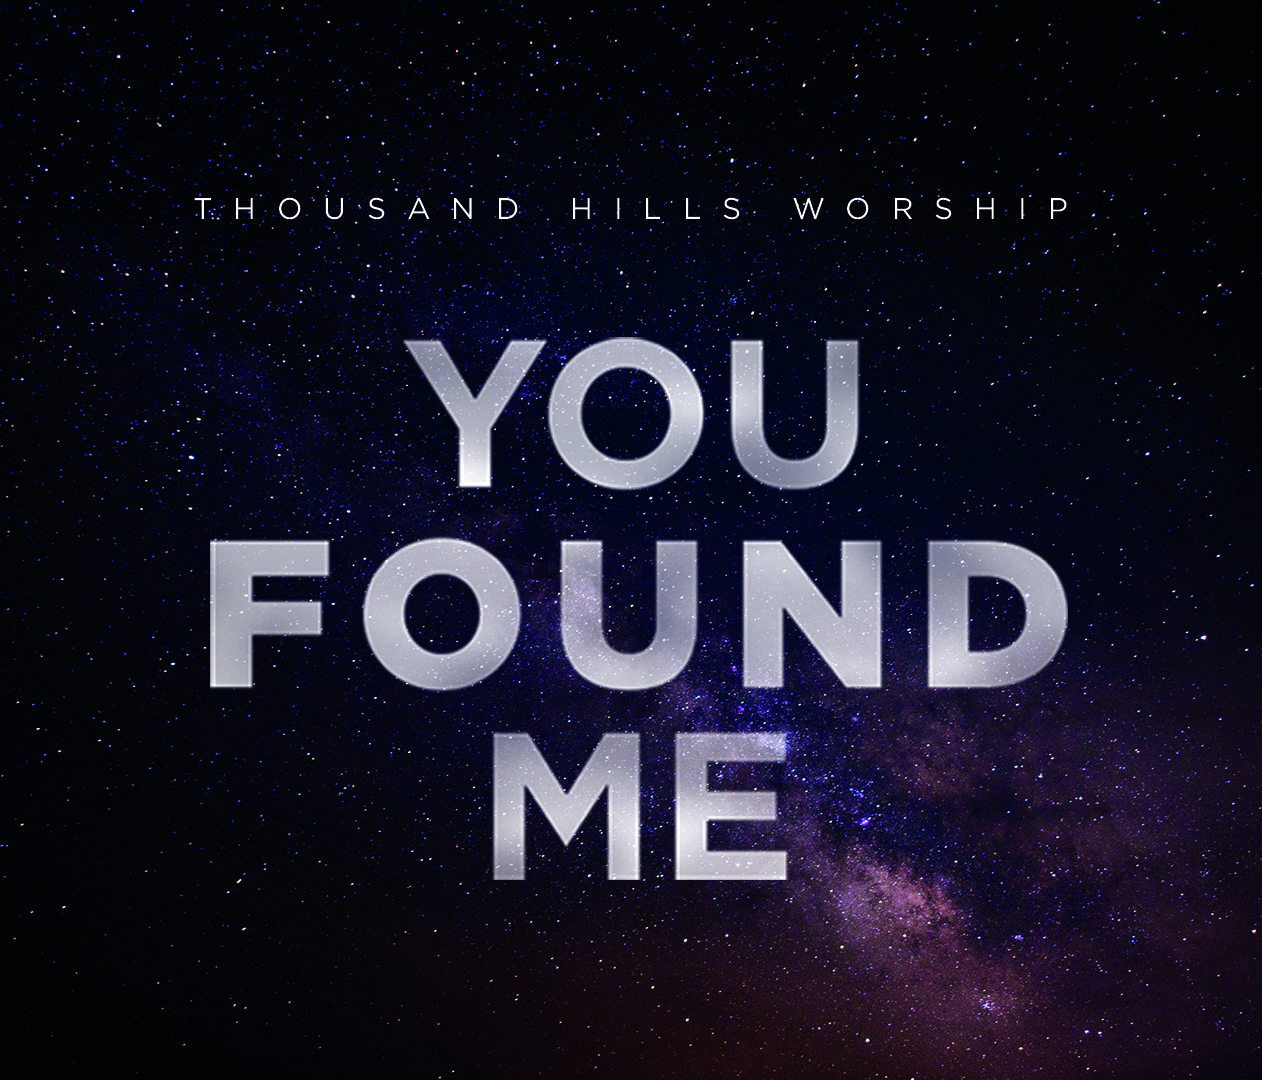 Yours forever - Thousand Hills Worship